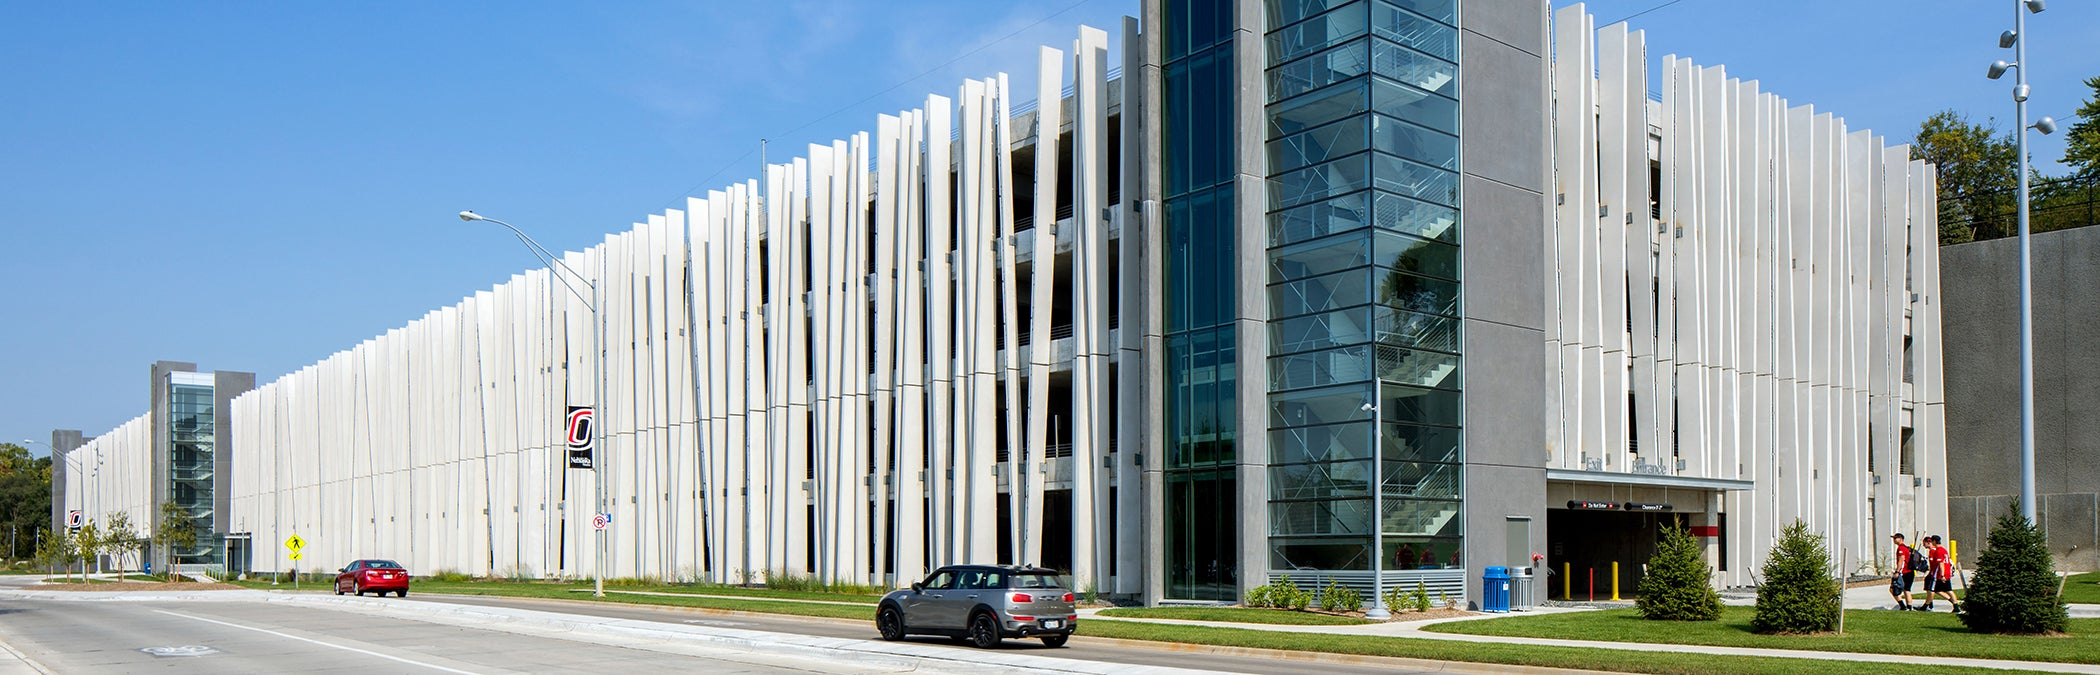 Hdr Designed Uno Parking Structure Earns Accolades From